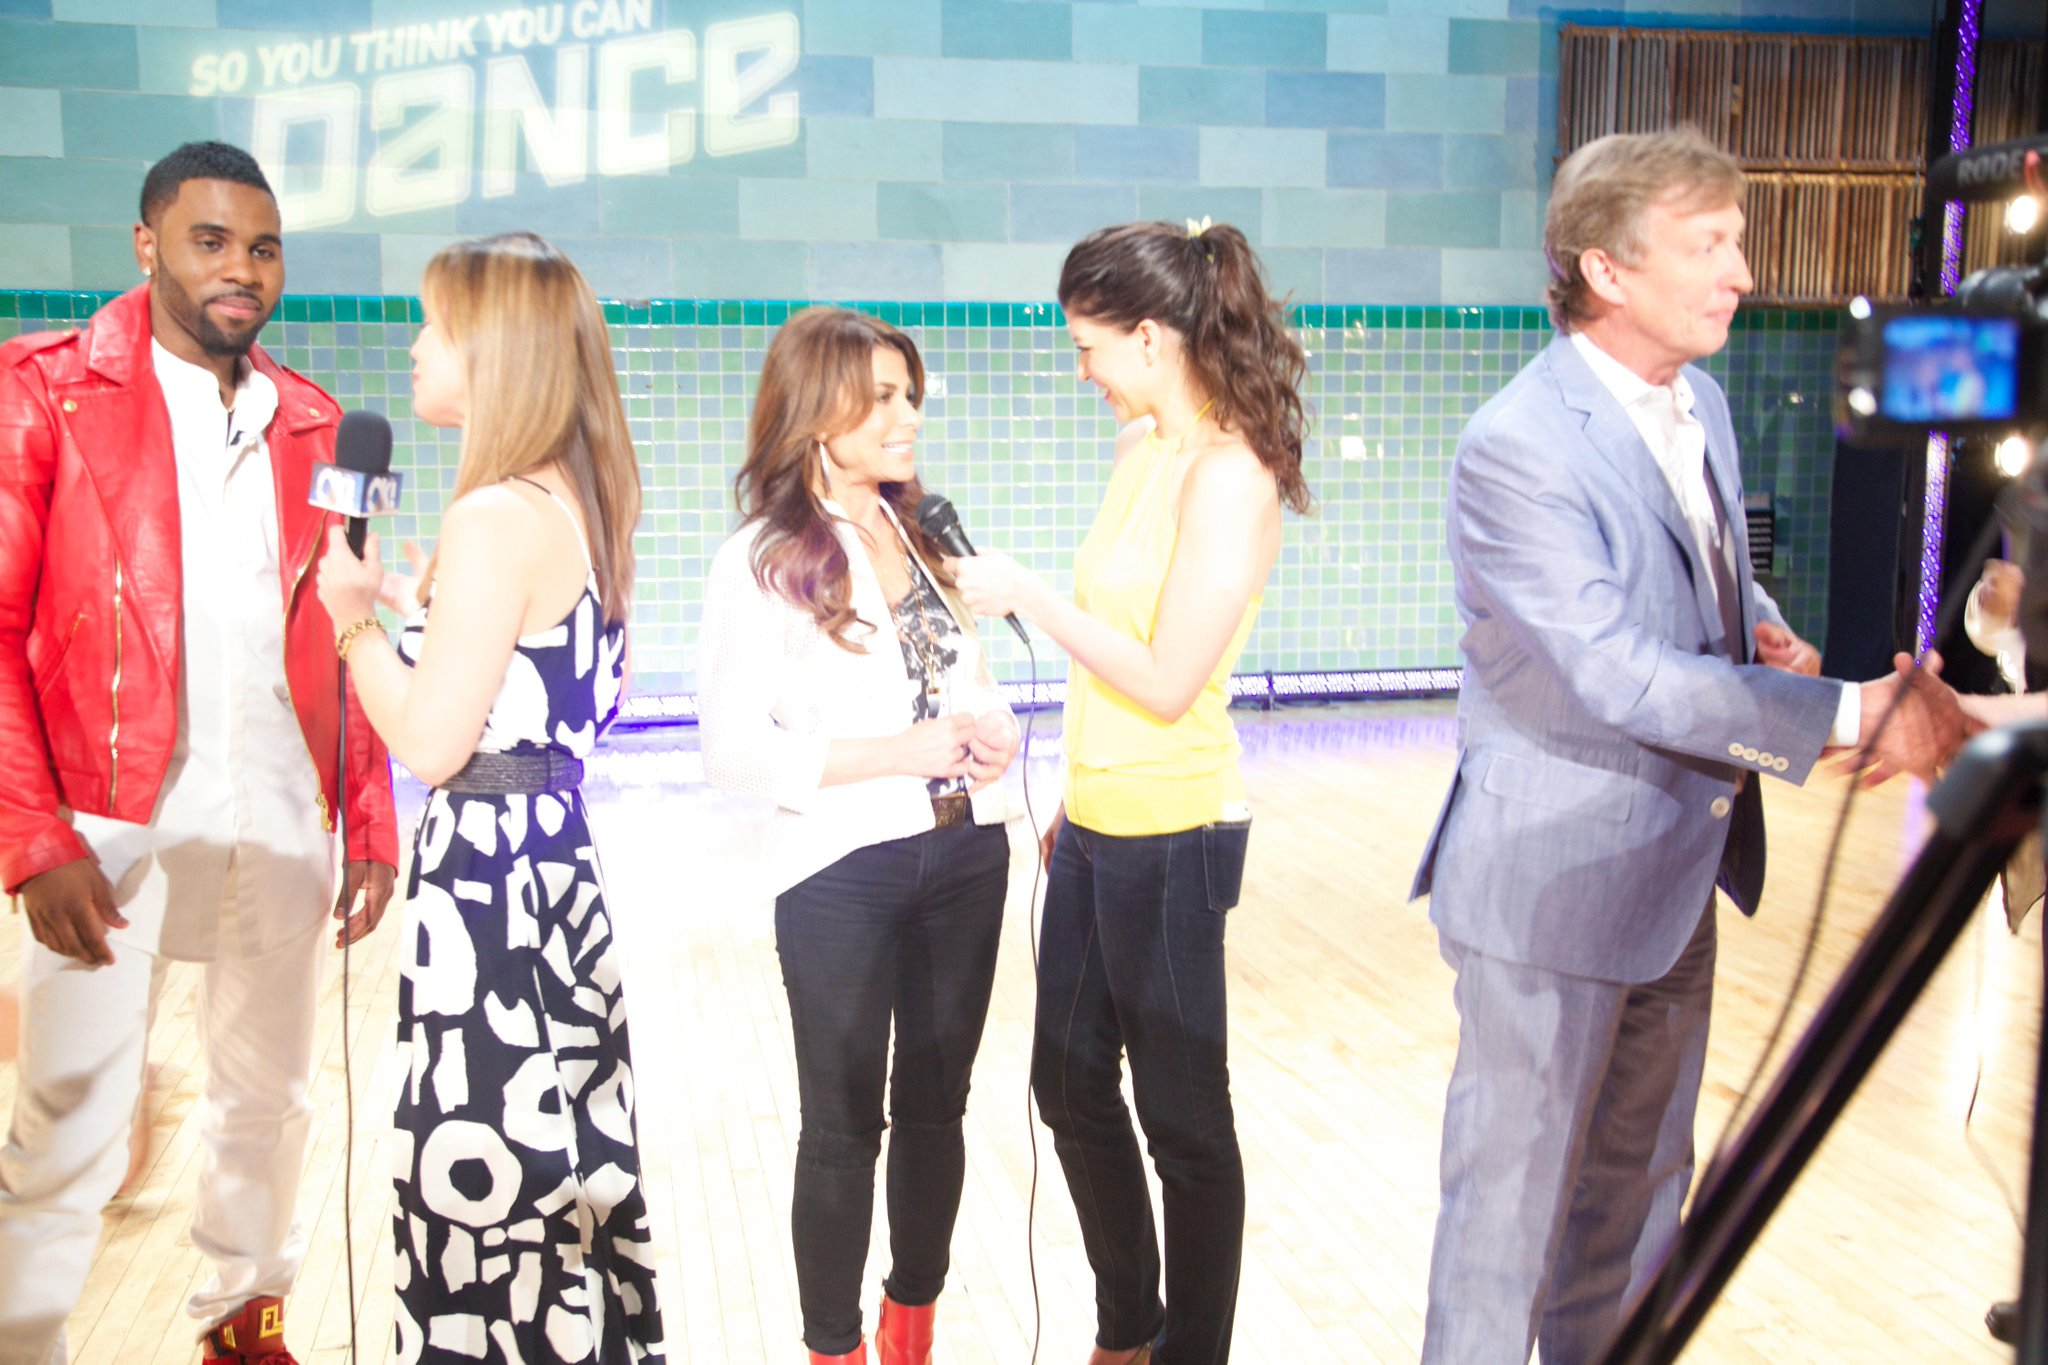 ;) RT @KristinaNikols: Interviewing the incredibly sweet @PaulaAbdul at #SYTYCDAuditions @HollywoodJunket! #dancelove http://t.co/bemjwpkDDC